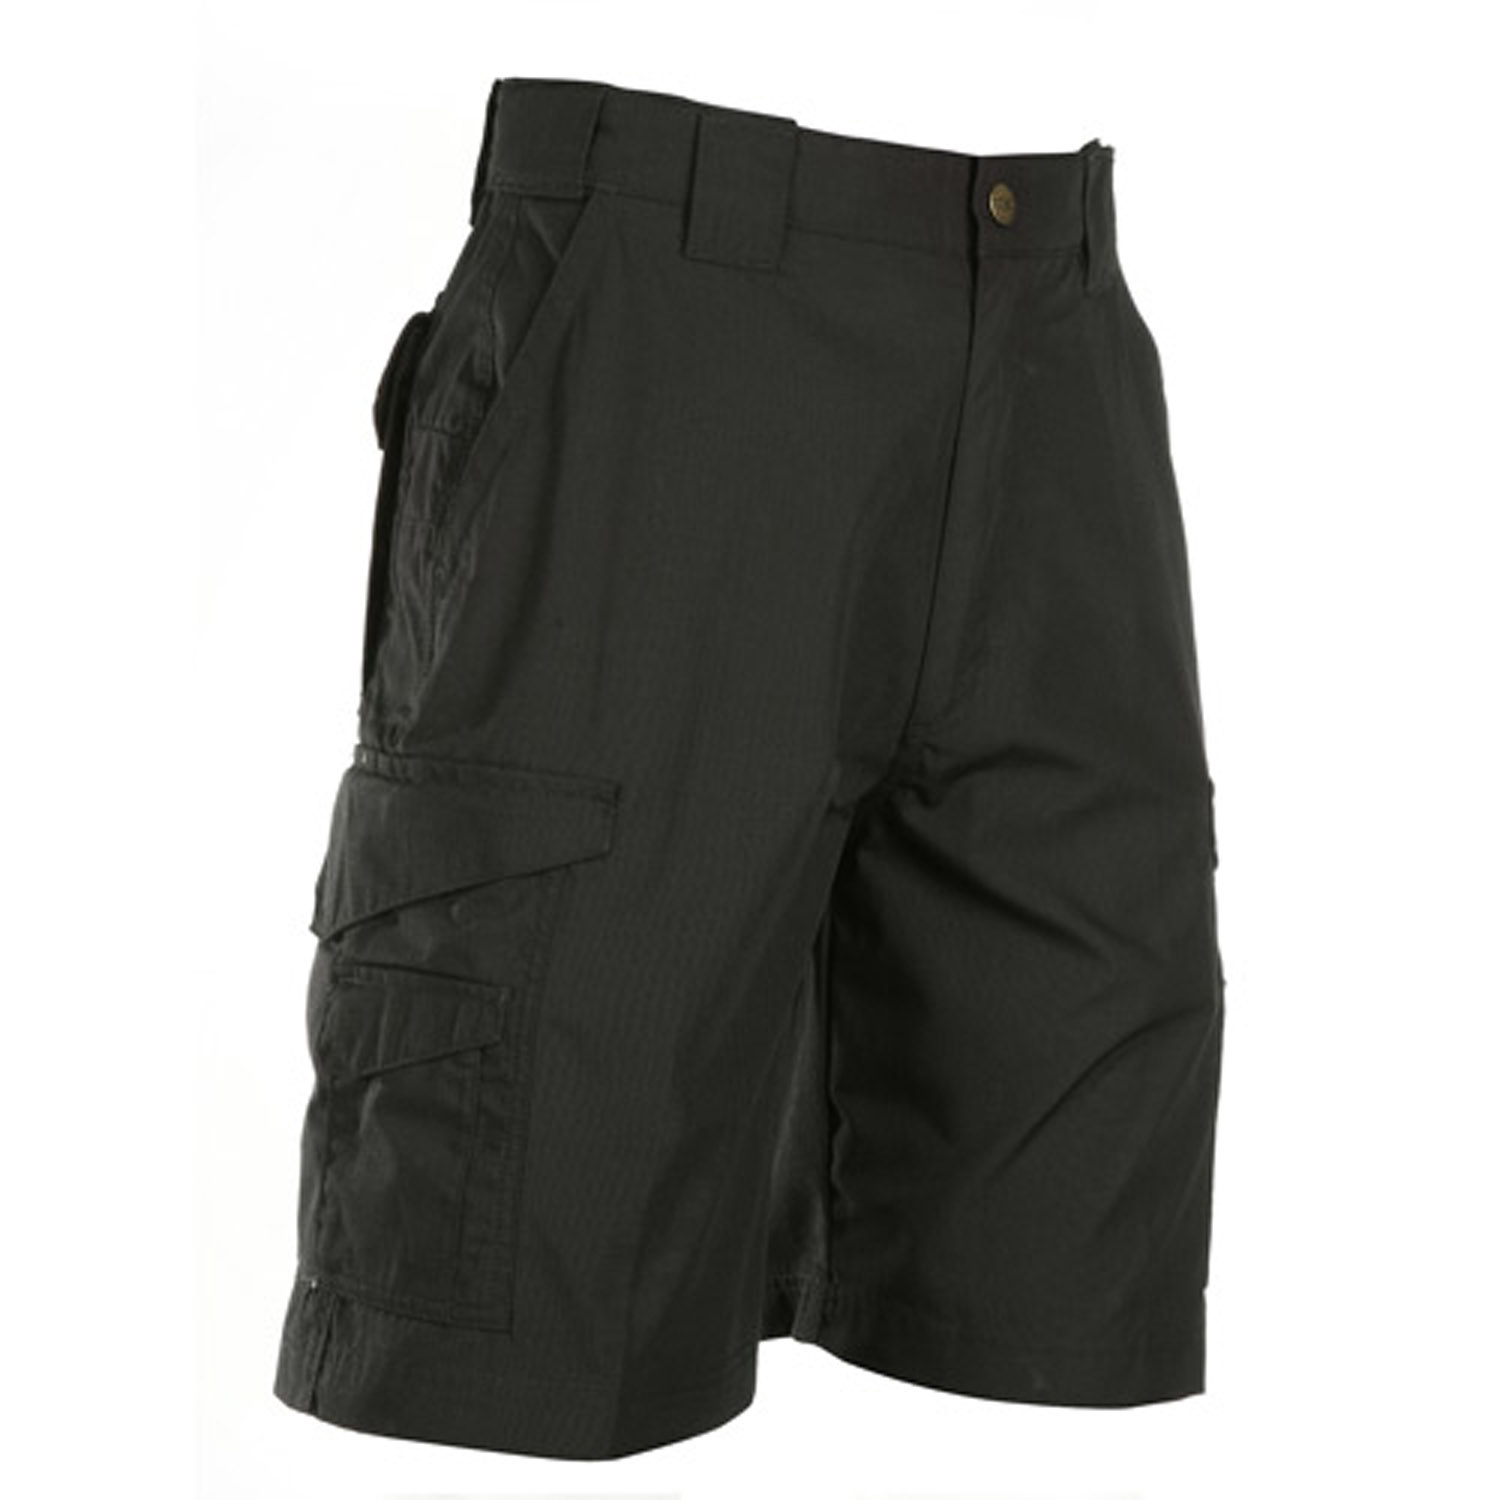 "Tru-Spec 24-7 Men's Ripstop 9"" Shorts"